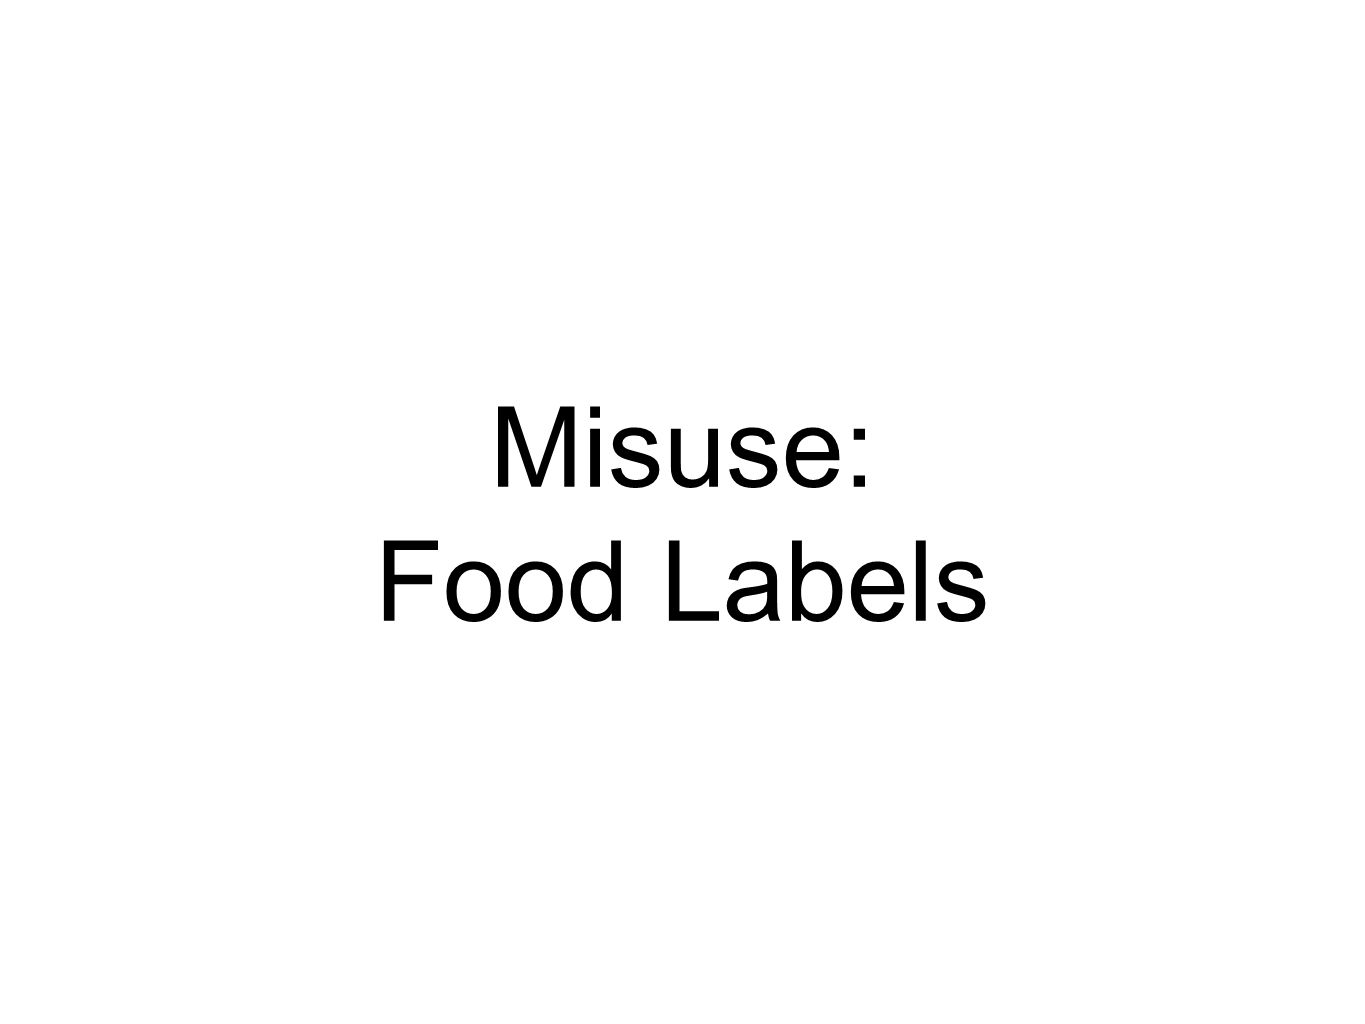 Misuse: Food Labels